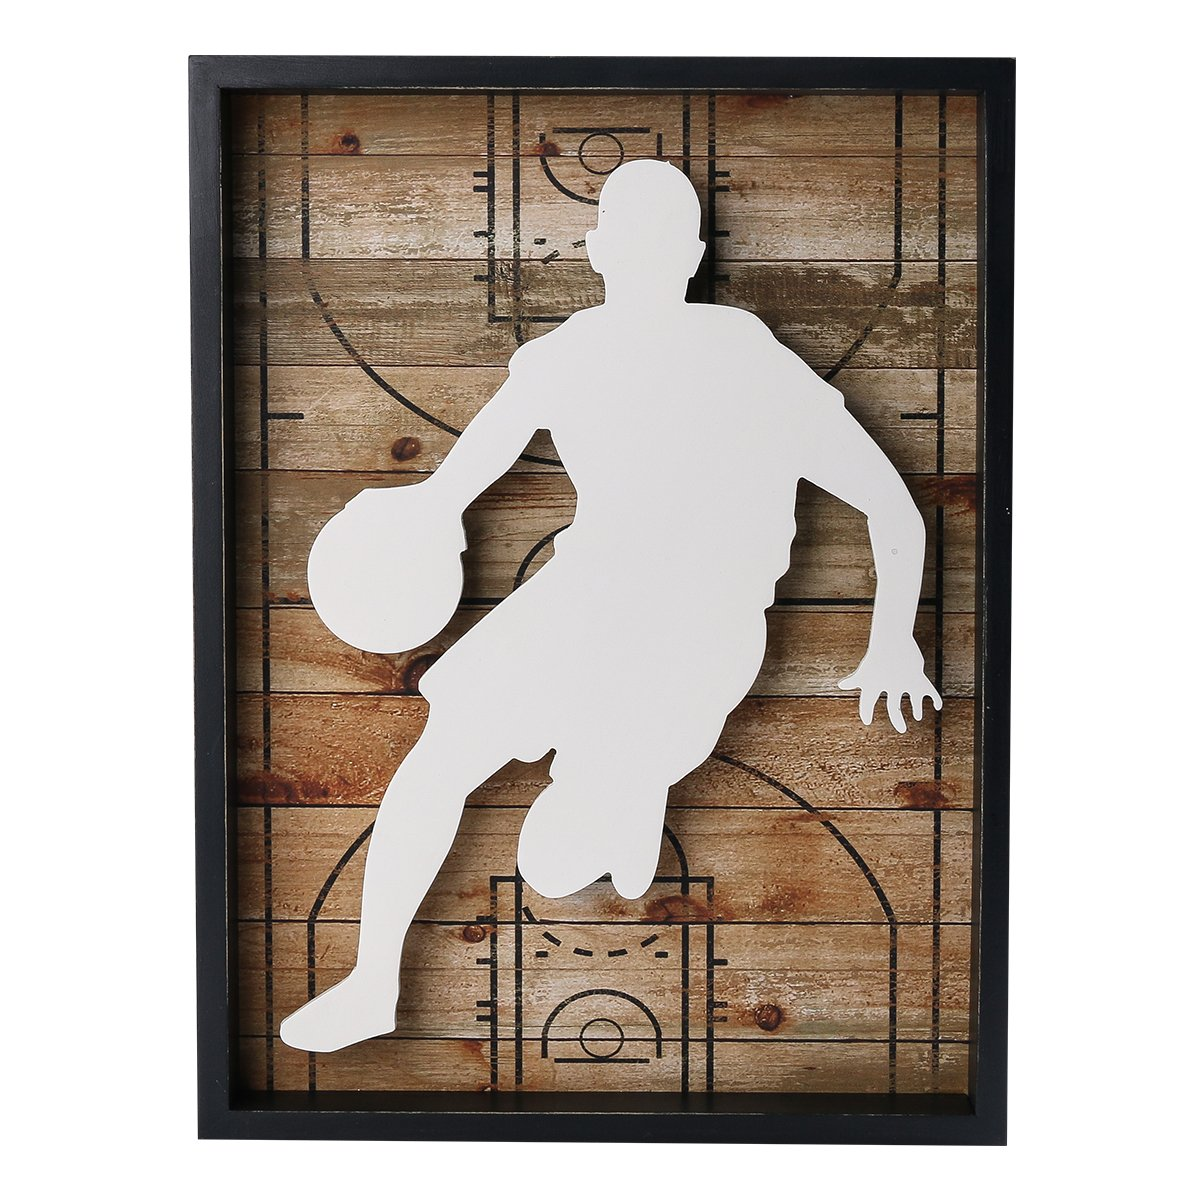 NIKKY HOME Outdoors Sports Football Wooden Framed Wall Art Signs 12 x 16 12 x 16